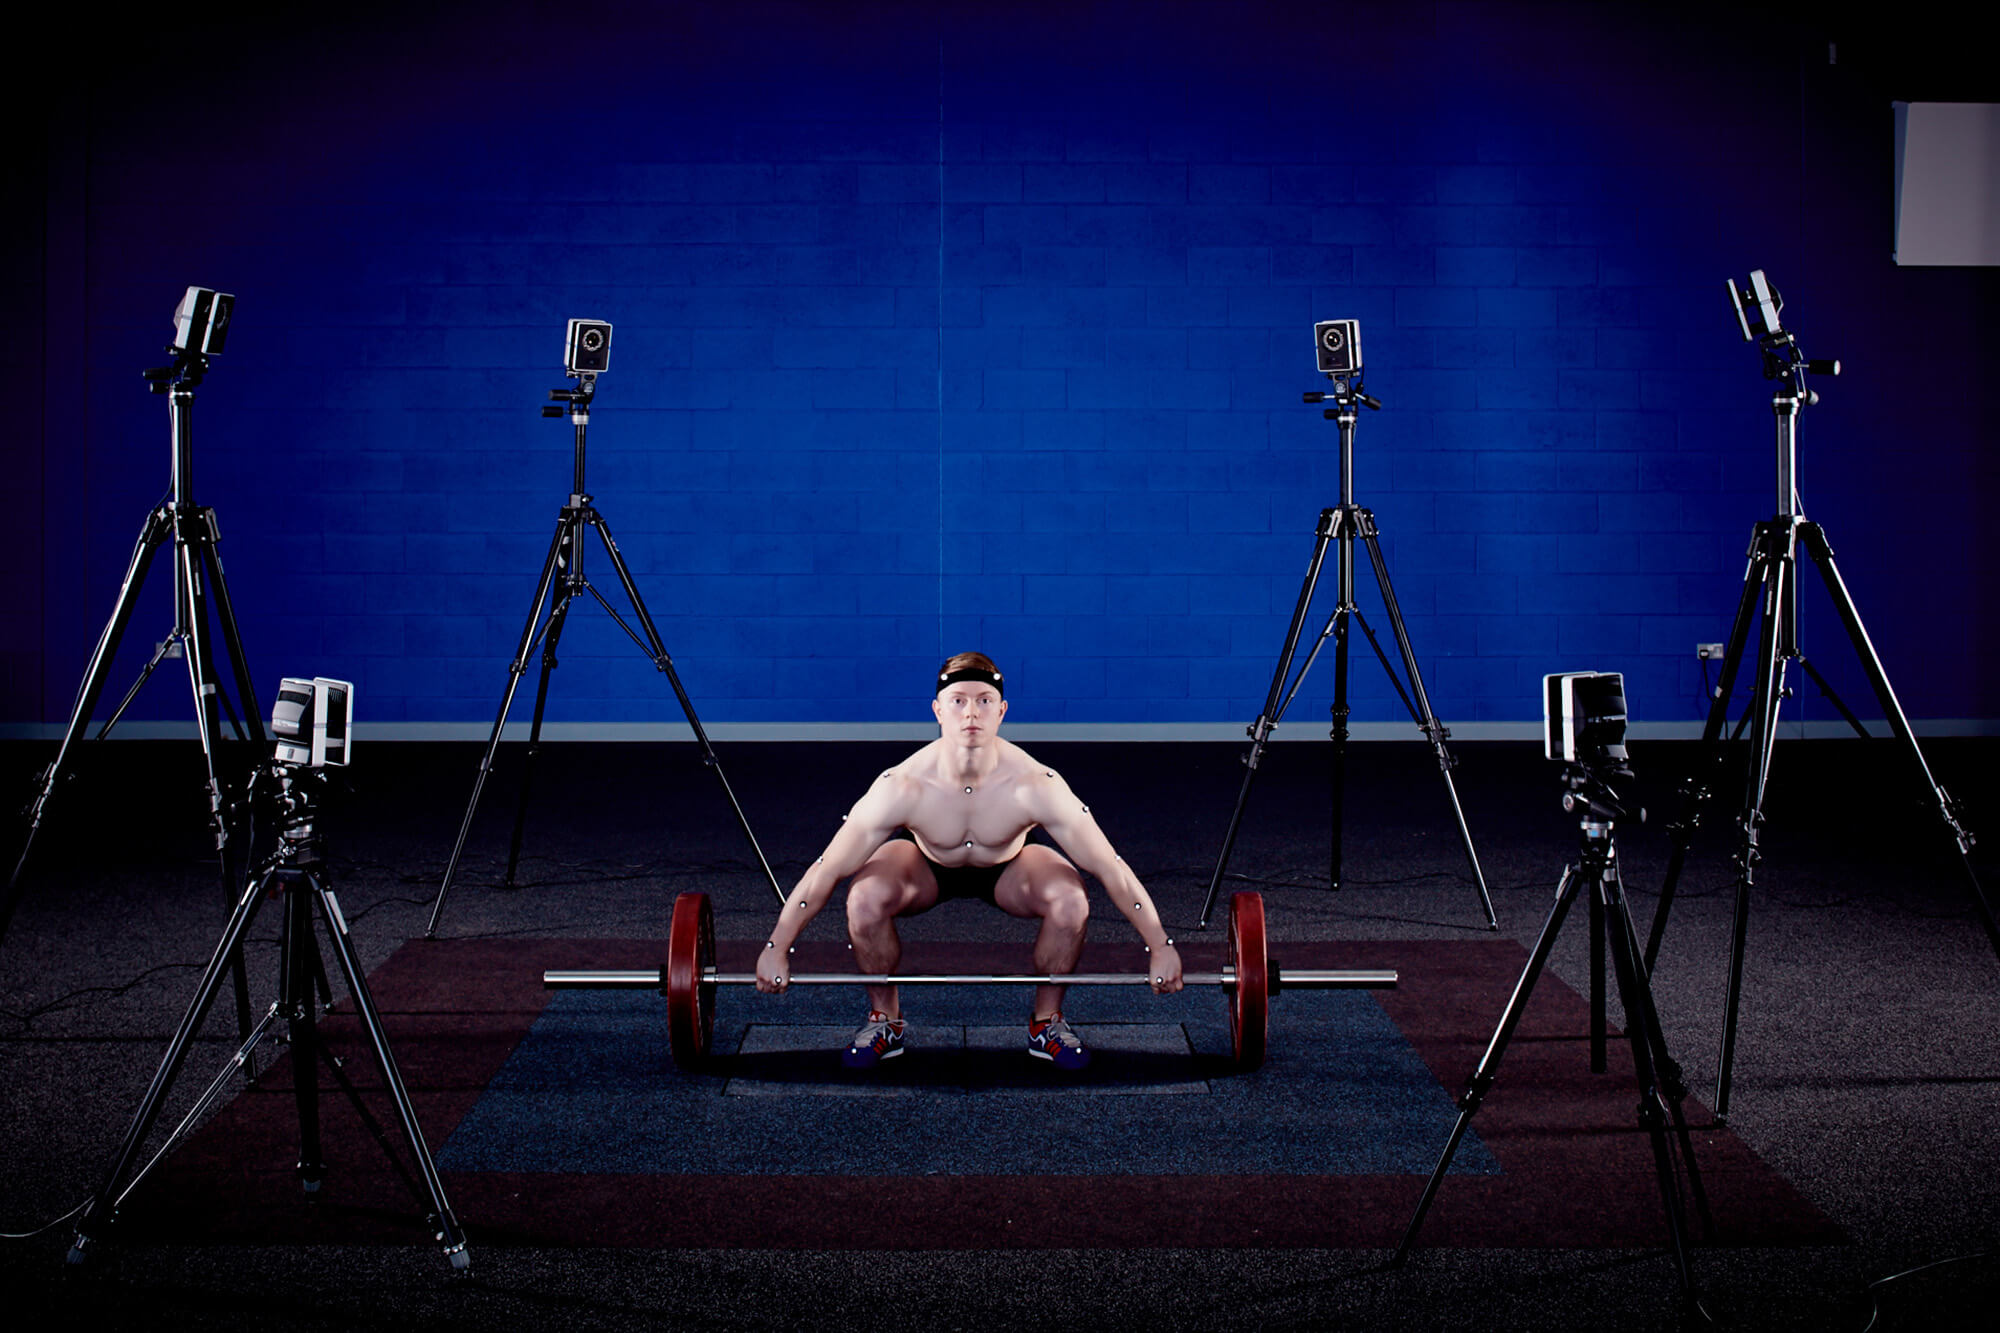 Weightlifter using our Vicon Motion Analysis Cameras in the Performance Suite